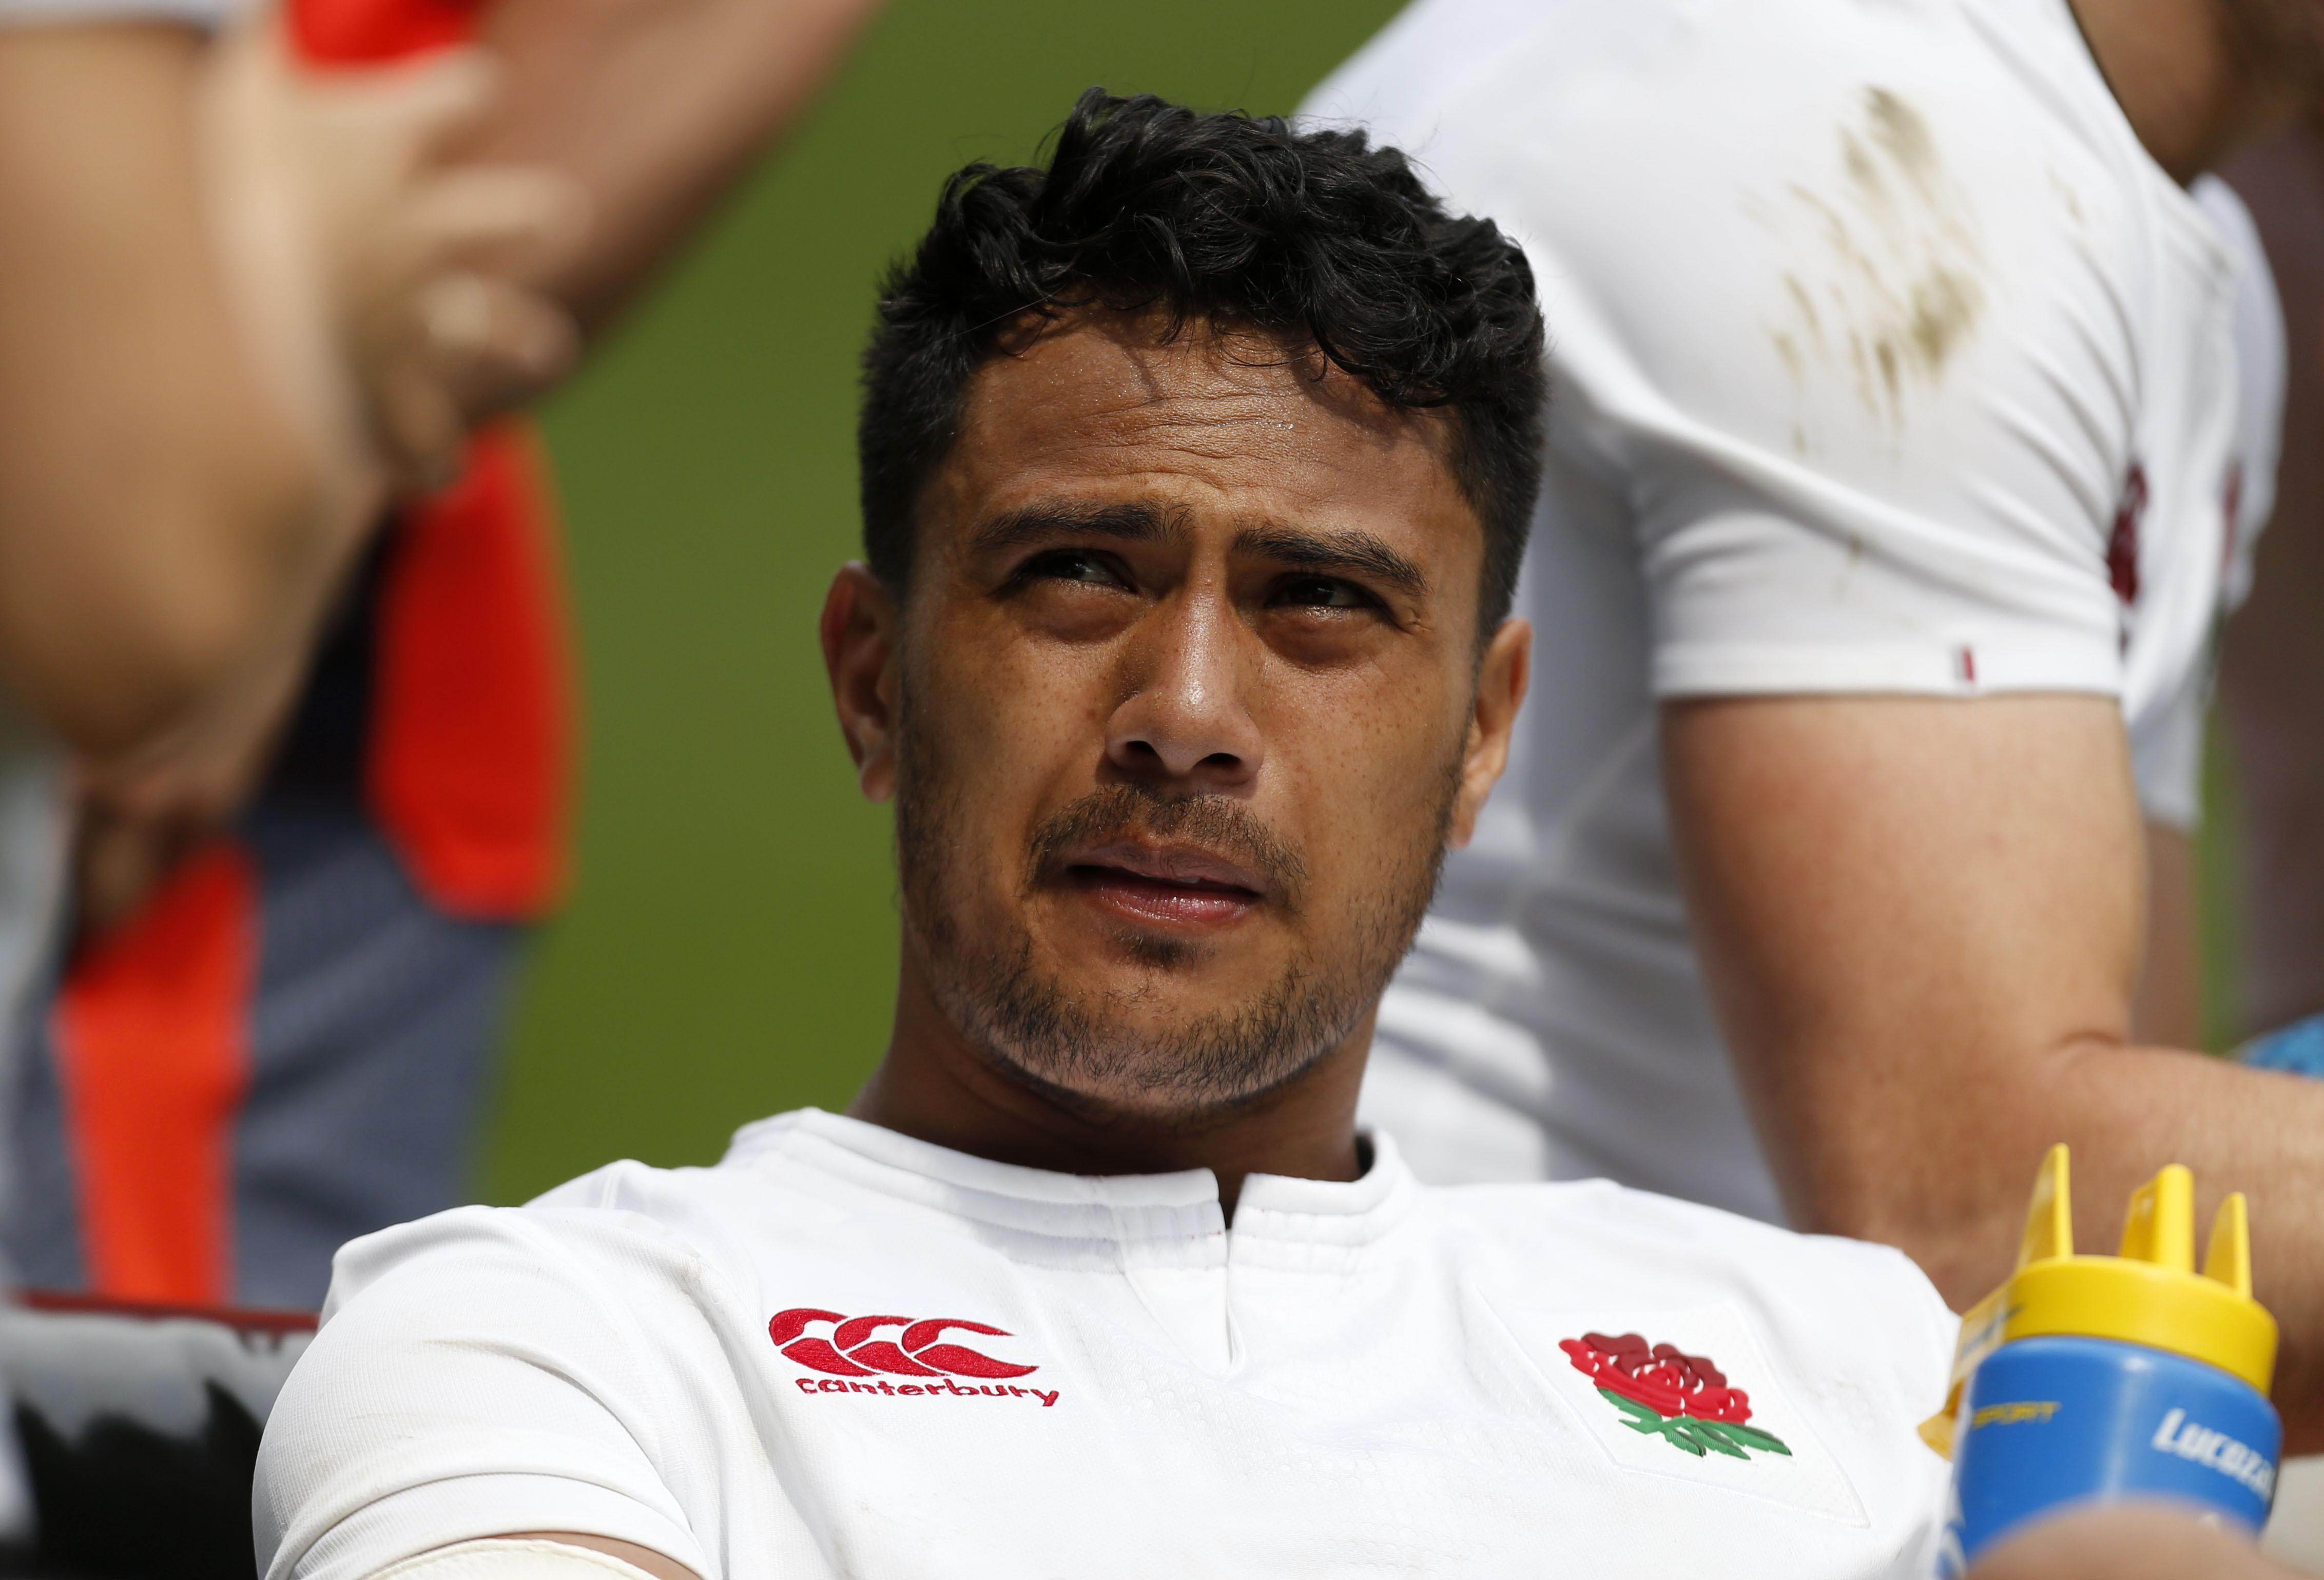 Sale star Denny Solomona insisted he was not homophobic but he was found to have made the foul and abusive slur against Jamie Shillcock three times